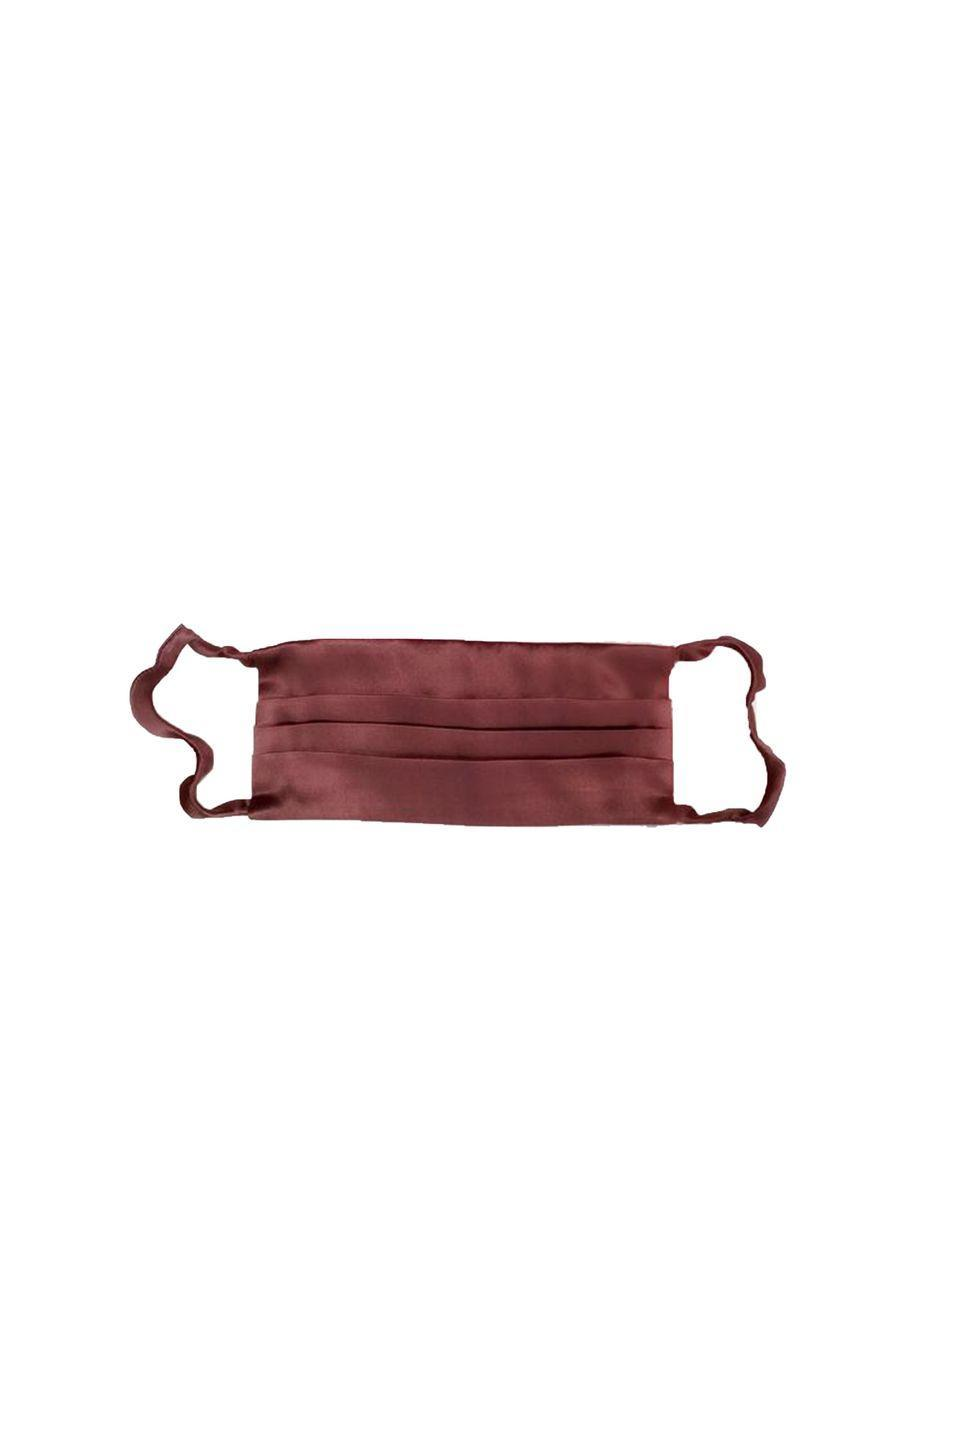 """<p><a class=""""link rapid-noclick-resp"""" href=""""https://facesilk.co.uk/products/fab-luxe-silk-face-mask-french-rose?pr_prod_strat=copurchase&pr_rec_pid=5581134823587&pr_ref_pid=5580971147427&pr_seq=uniform"""" rel=""""nofollow noopener"""" target=""""_blank"""" data-ylk=""""slk:SHOP NOW"""">SHOP NOW</a></p><p>The timeless deep-red hue to this mask proves that face coverings can be both safe and stylish.</p><p>Silk face mask, £21.99, <a href=""""https://facesilk.co.uk/products/fab-luxe-silk-face-mask-french-rose?pr_prod_strat=copurchase&pr_rec_pid=5581134823587&pr_ref_pid=5580971147427&pr_seq=uniform"""" rel=""""nofollow noopener"""" target=""""_blank"""" data-ylk=""""slk:Face Silk"""" class=""""link rapid-noclick-resp"""">Face Silk</a></p>"""